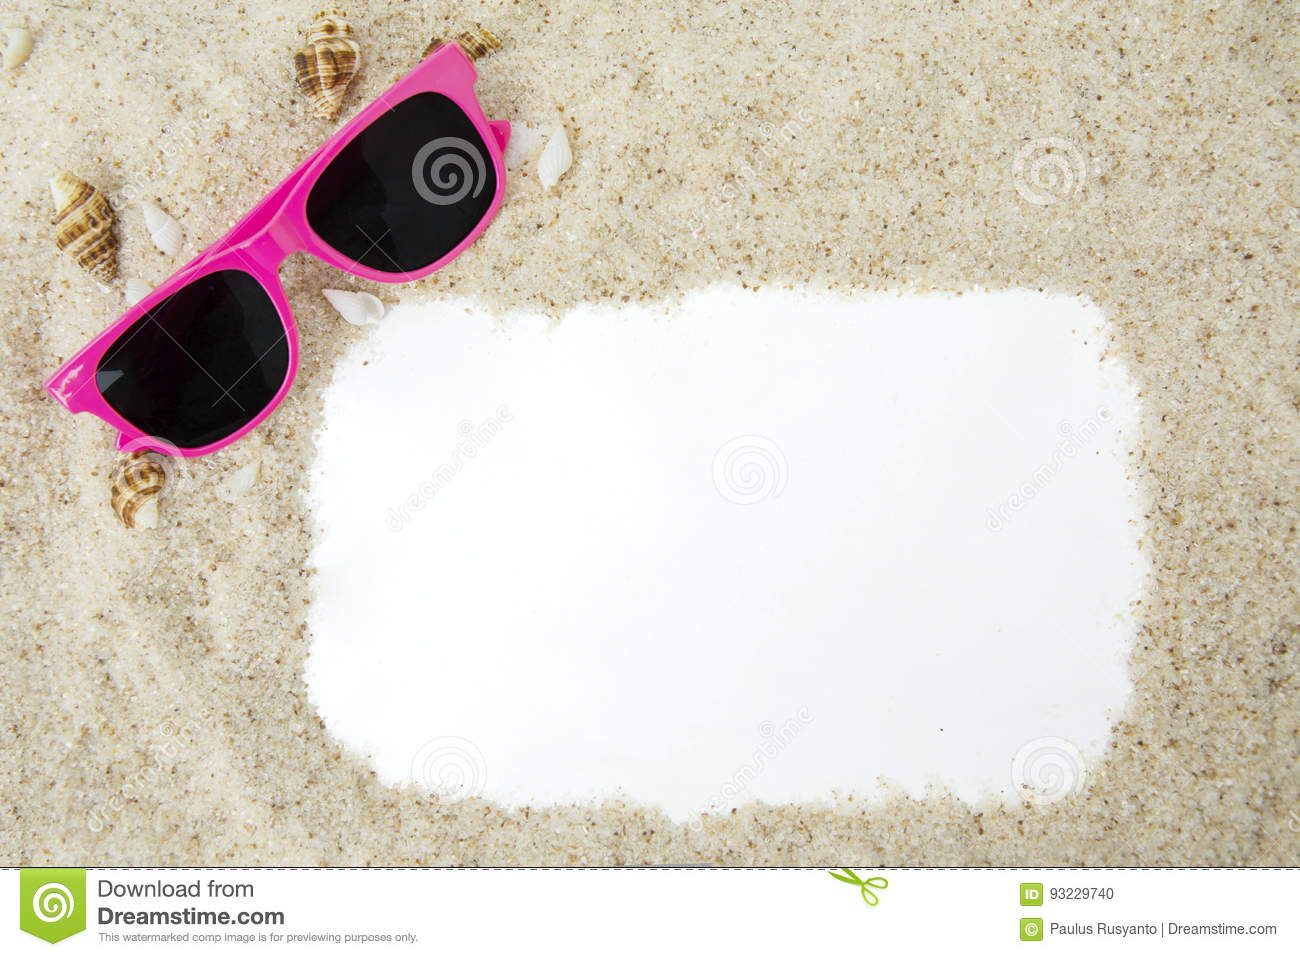 Frame with sand and sunglasses